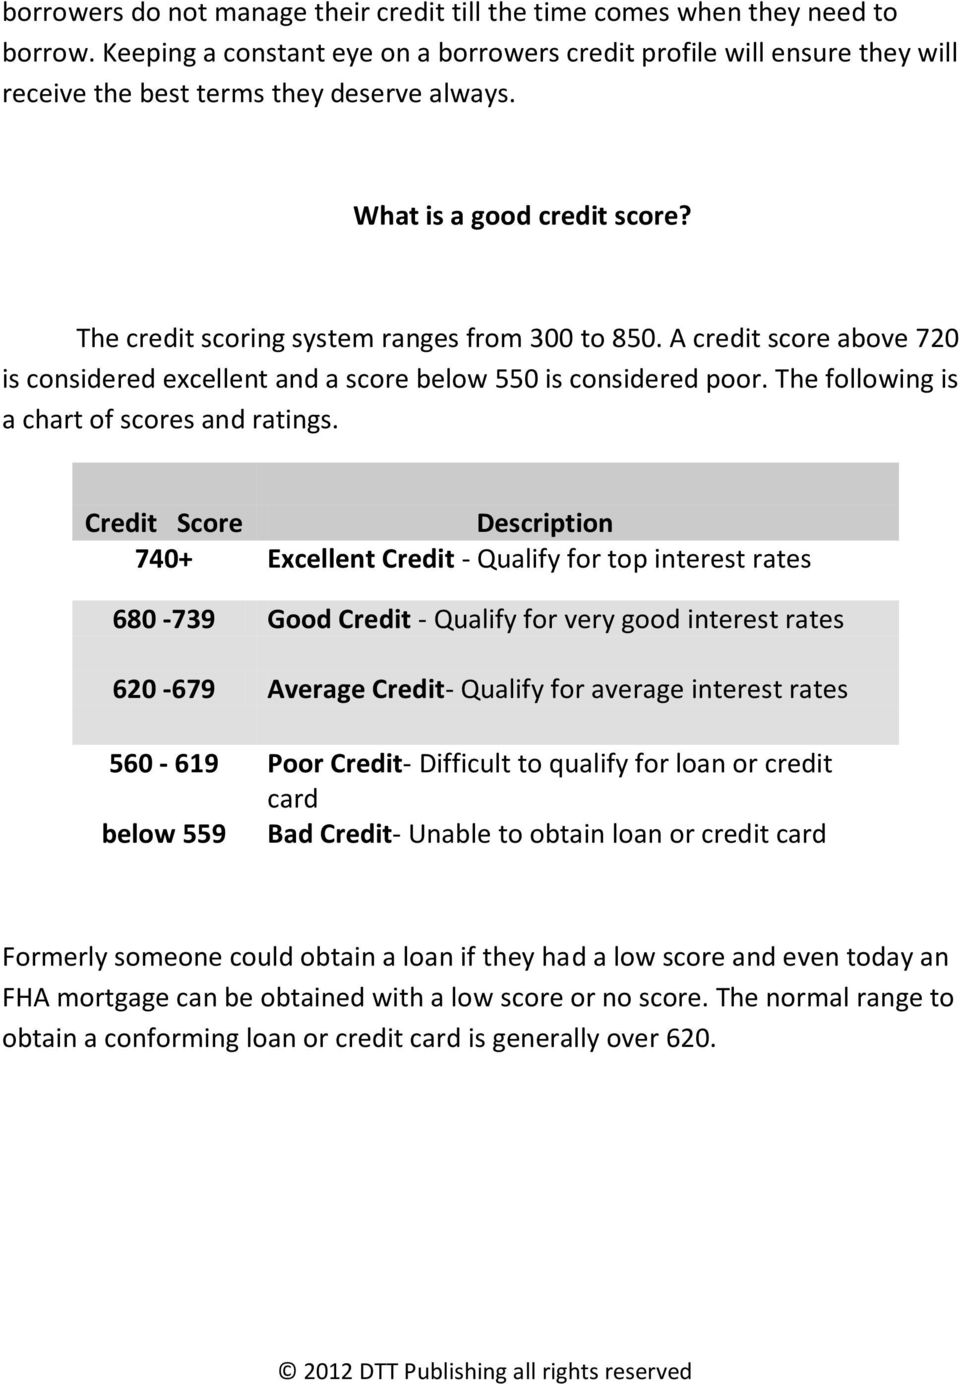 A credit score above 720 is considered excellent and a score below 550 is considered poor. The following is a chart of scores and ratings.